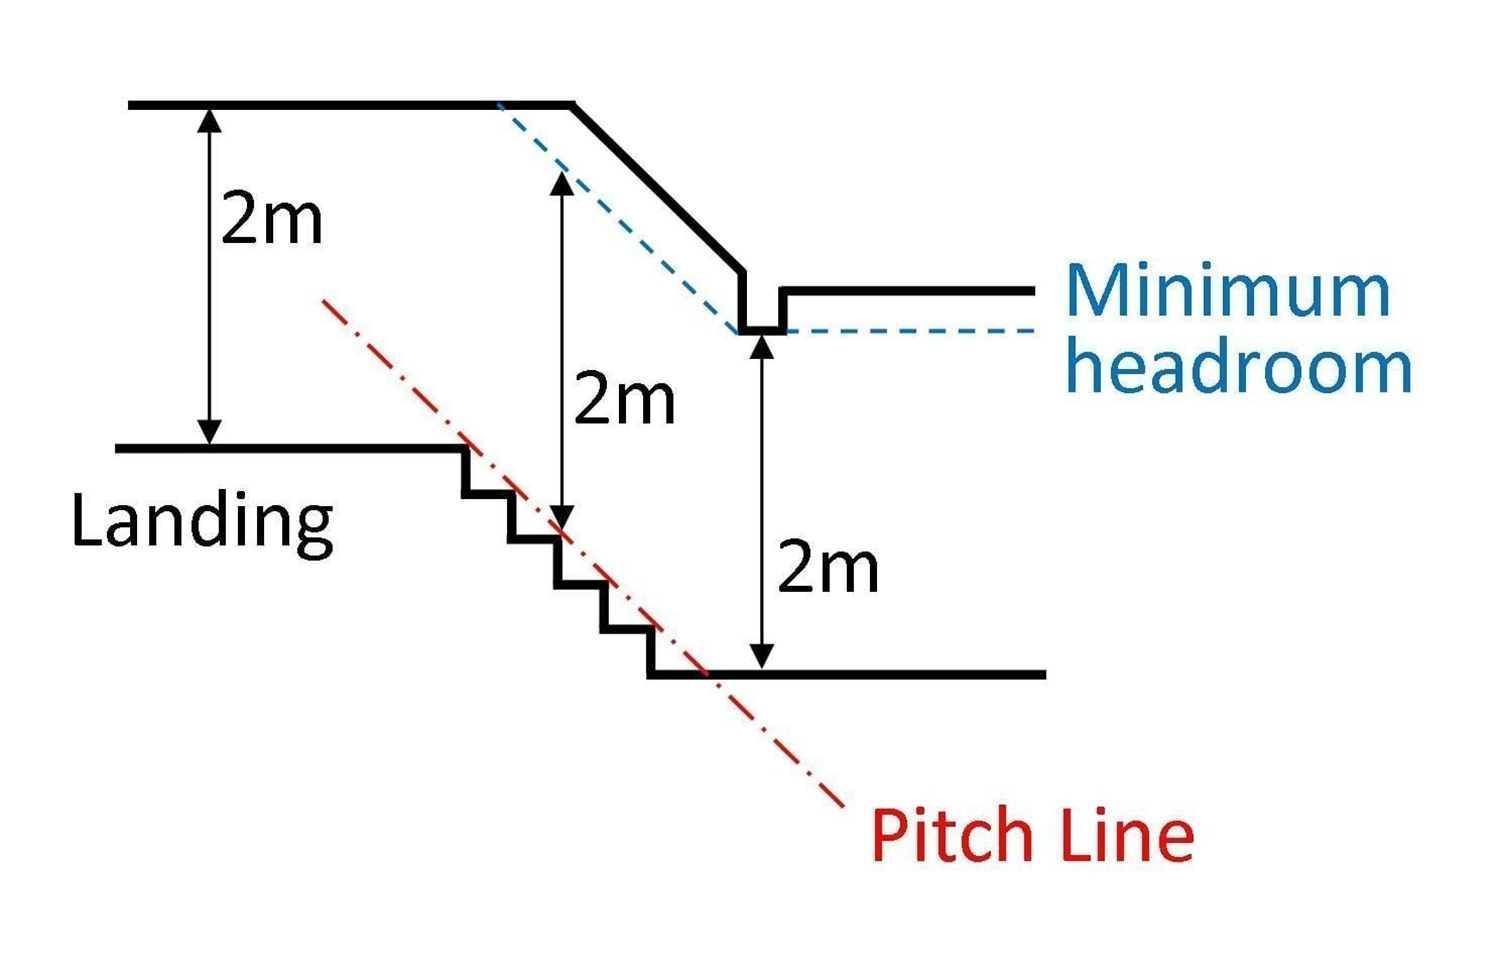 UK Head Room Regulations, Pear Stairs, Head Room Requirements